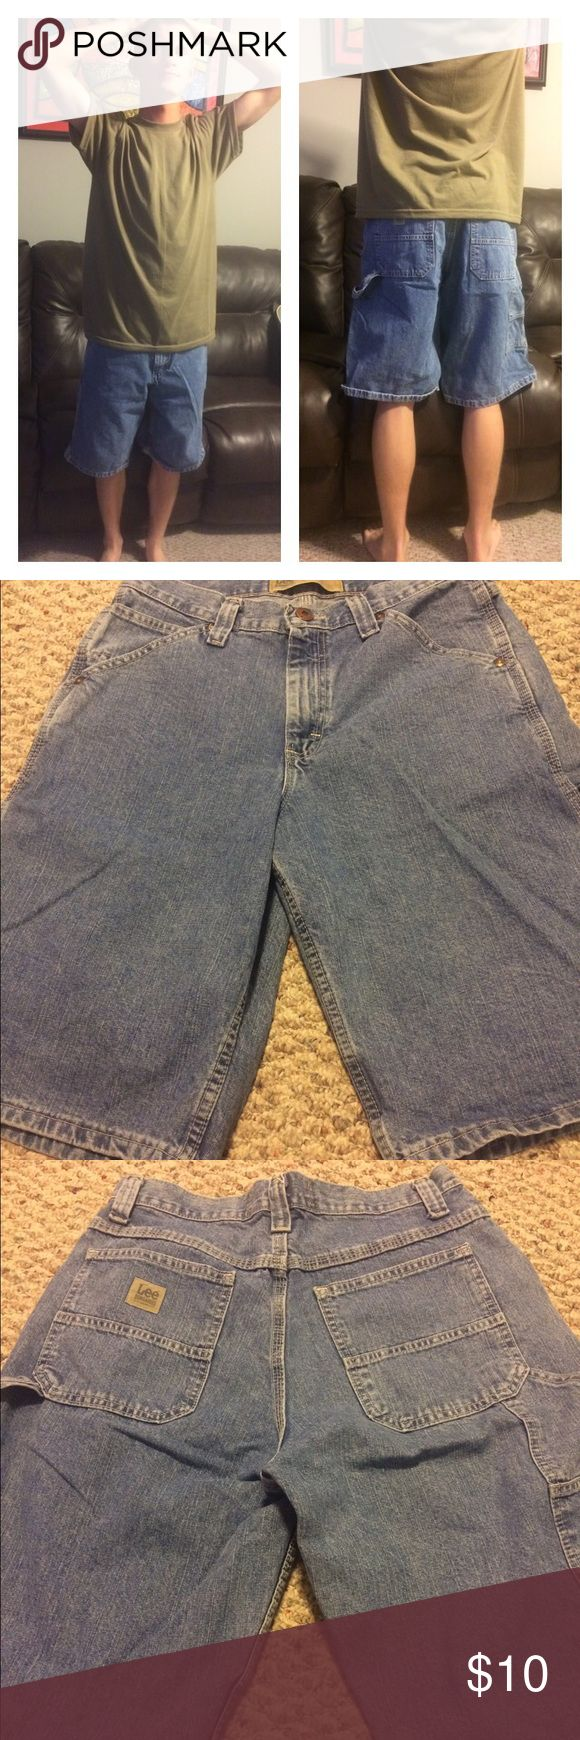 Men's Lee shorts Men's carpenter lee dungarees shorts. In good condition. No stains rips or frays. Lee Shorts Jean Shorts